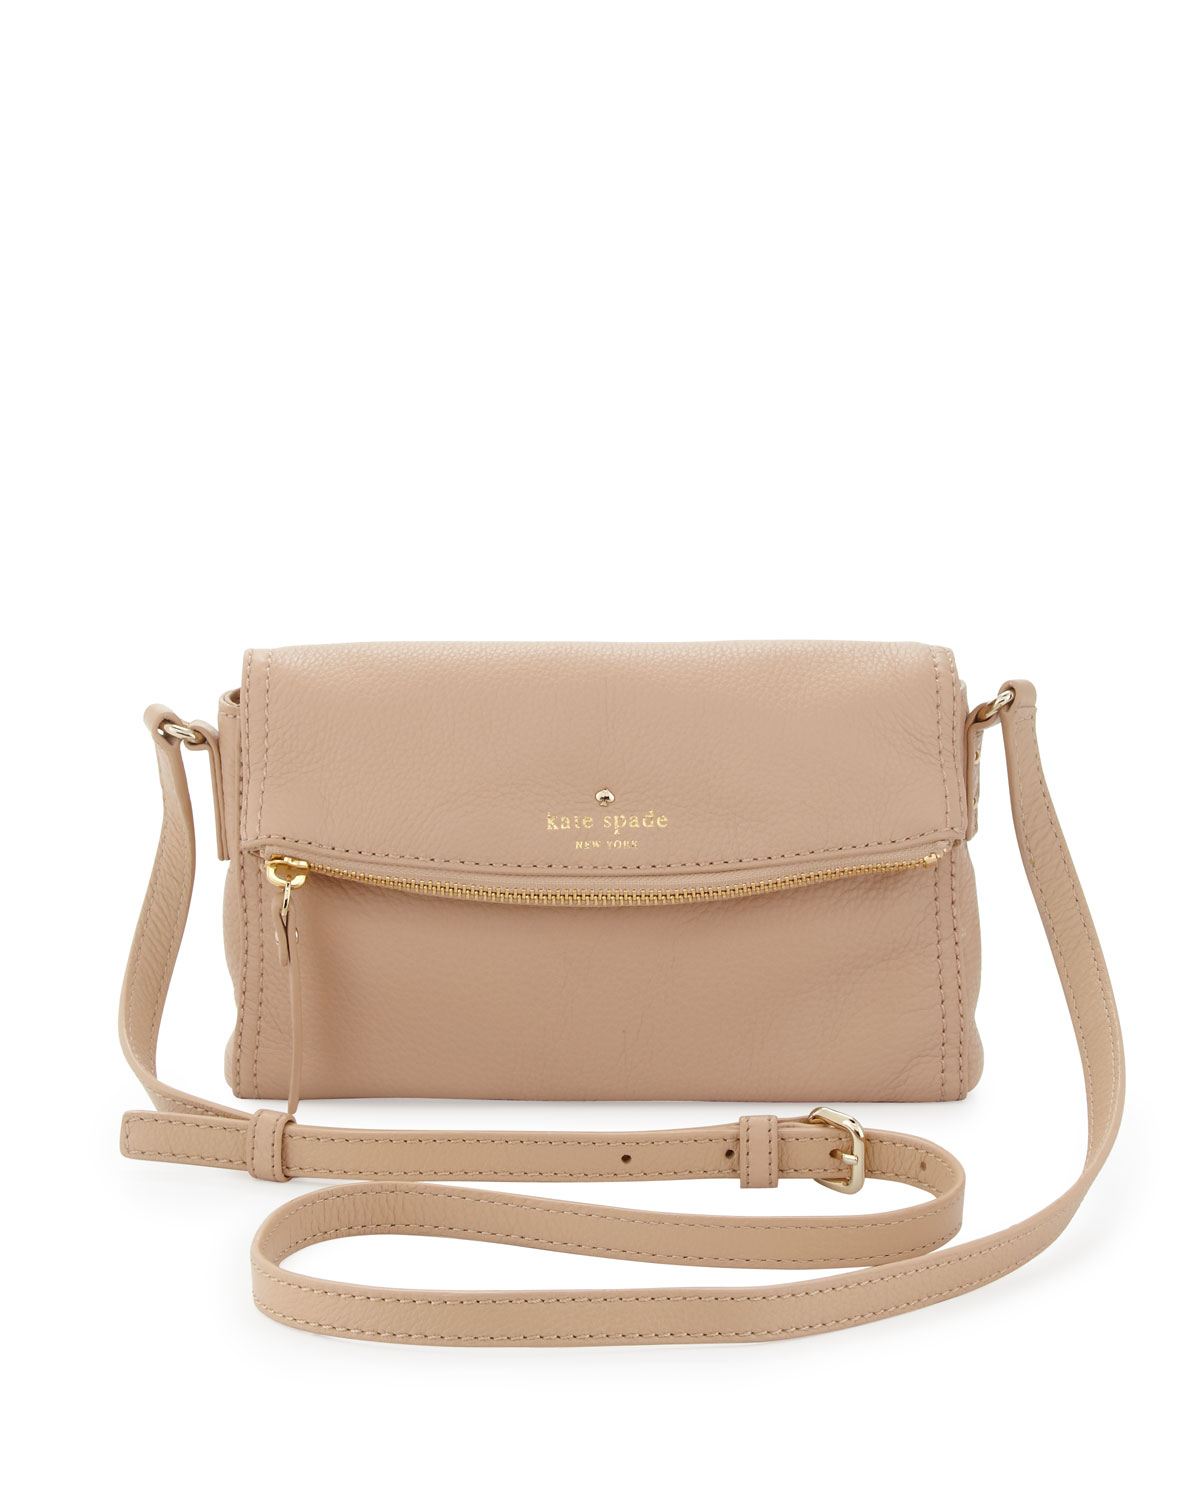 cobble hill carson crossbody bag, affogato   kate spade new york